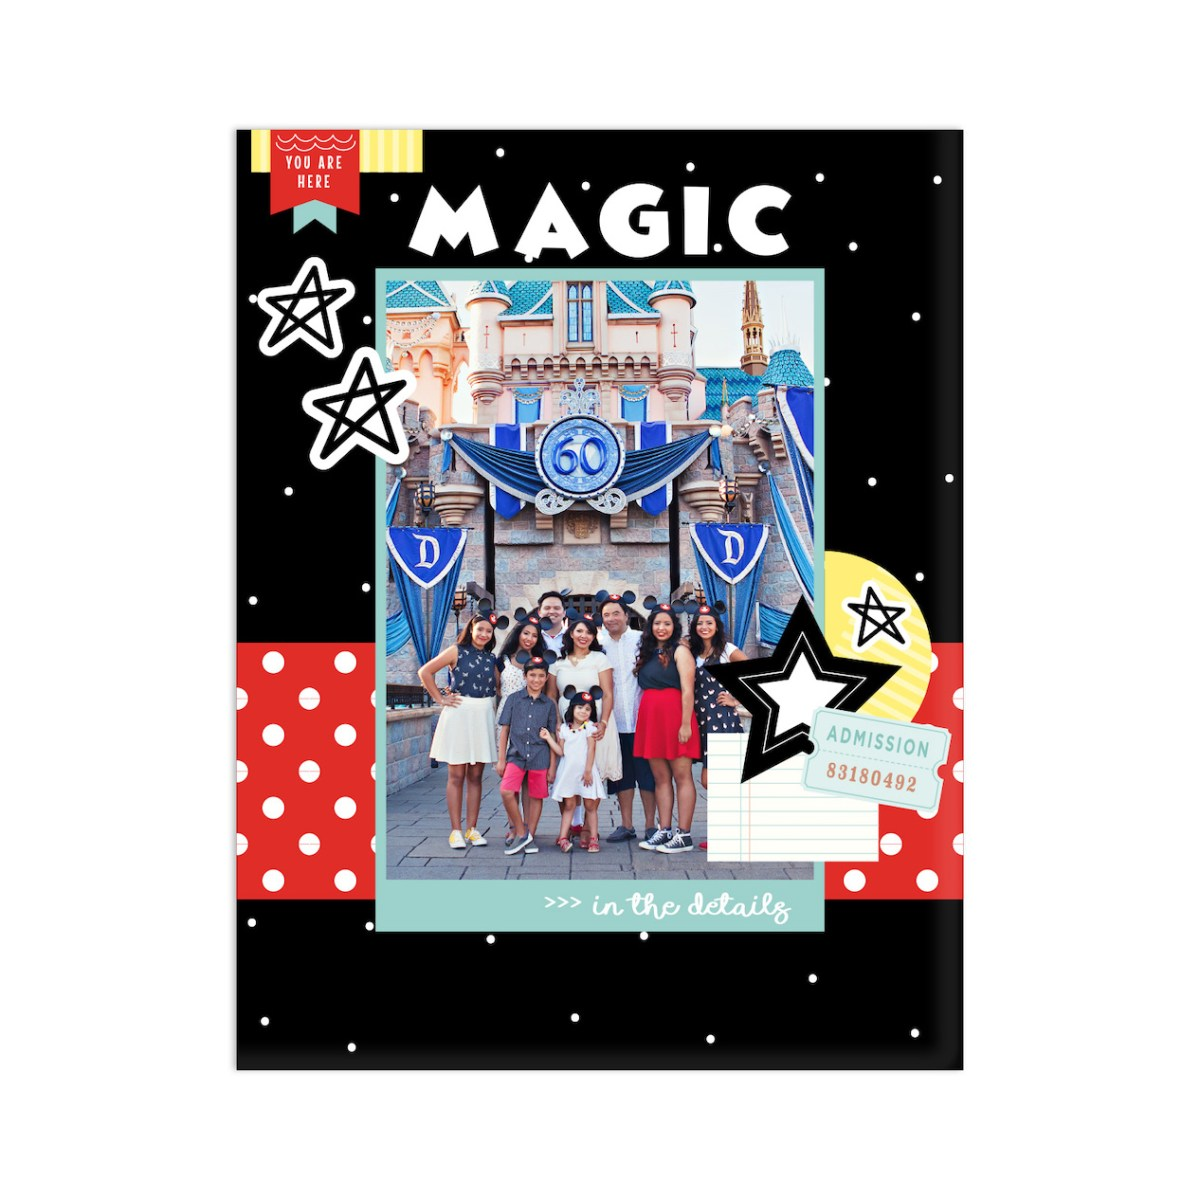 Happiest Place Paper Collection #ctmh #closetomyheart #happiestplace #scrapbooking #cardmaking #papercrafting #magic #themepark #amusementpark #dream #cutabove #memorykeeping